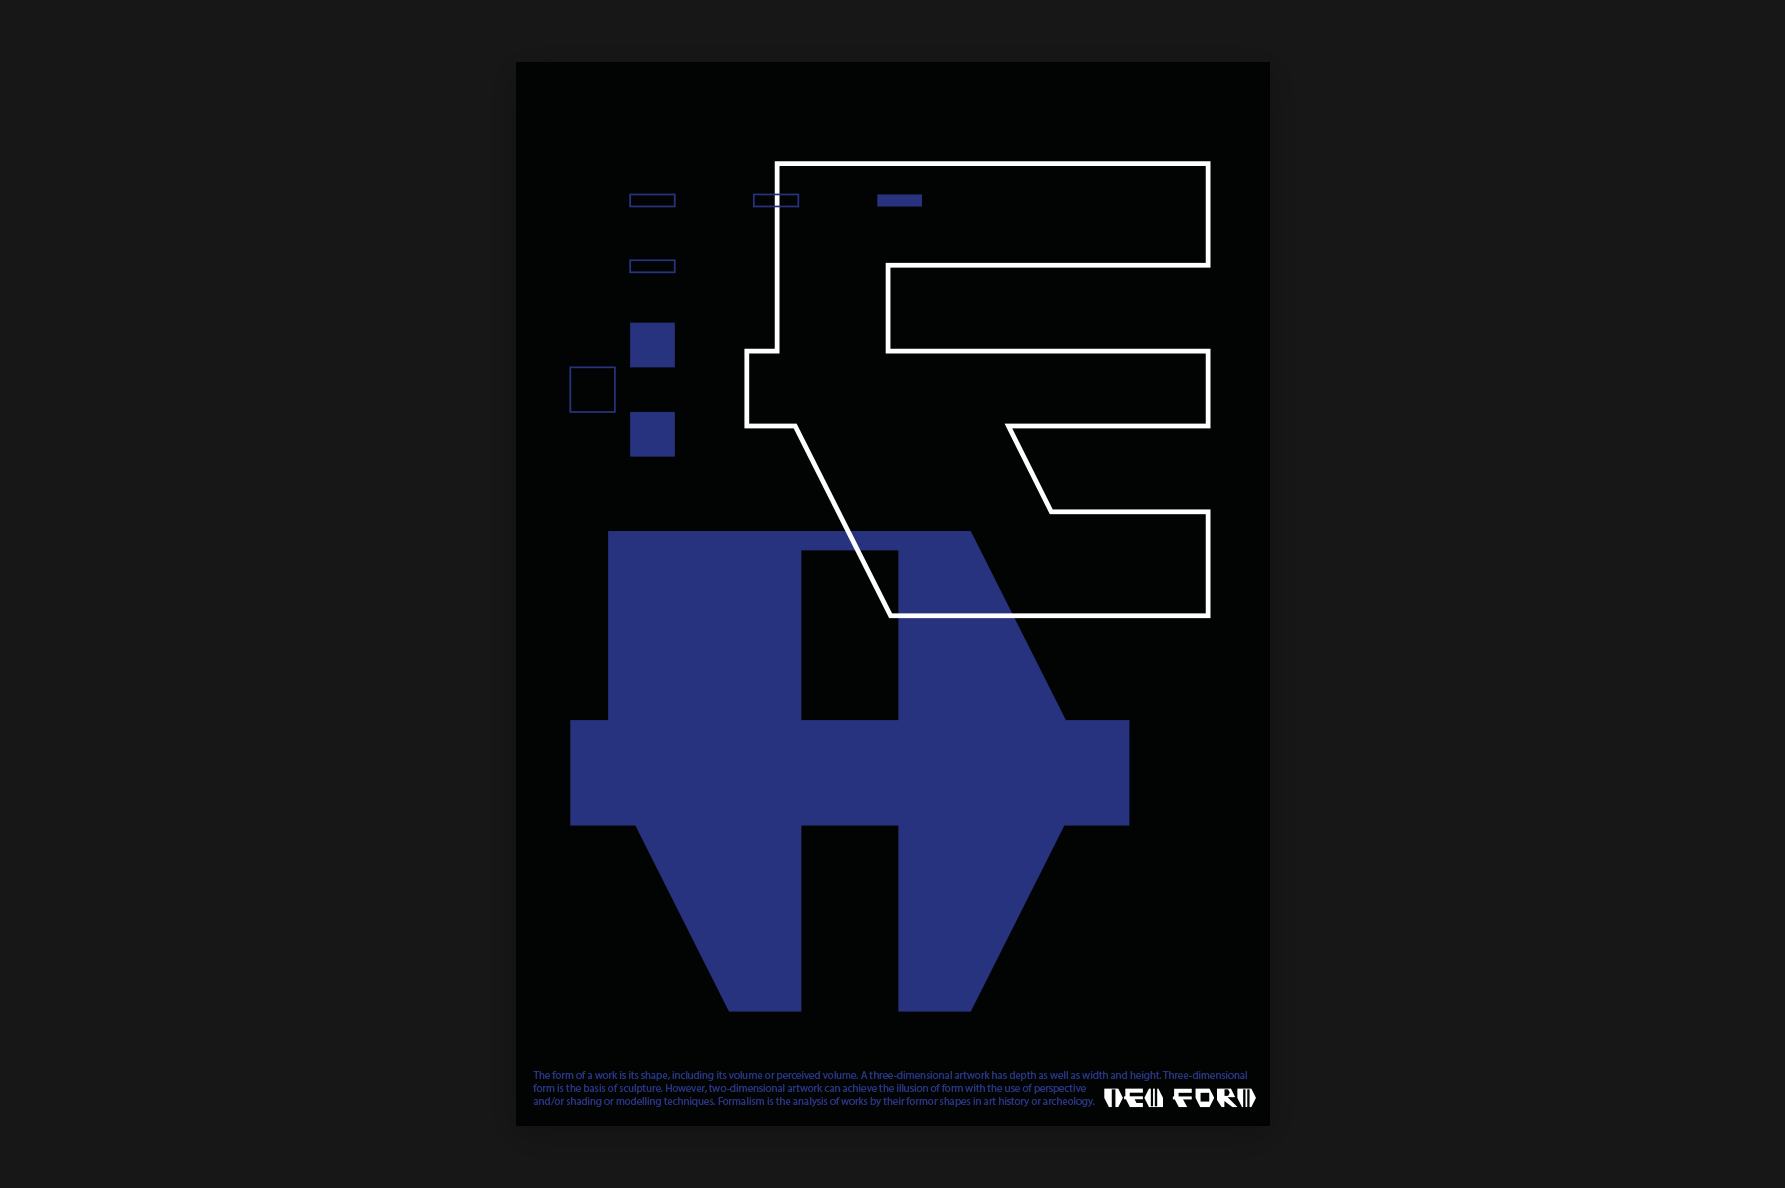 sito_newform-poster2